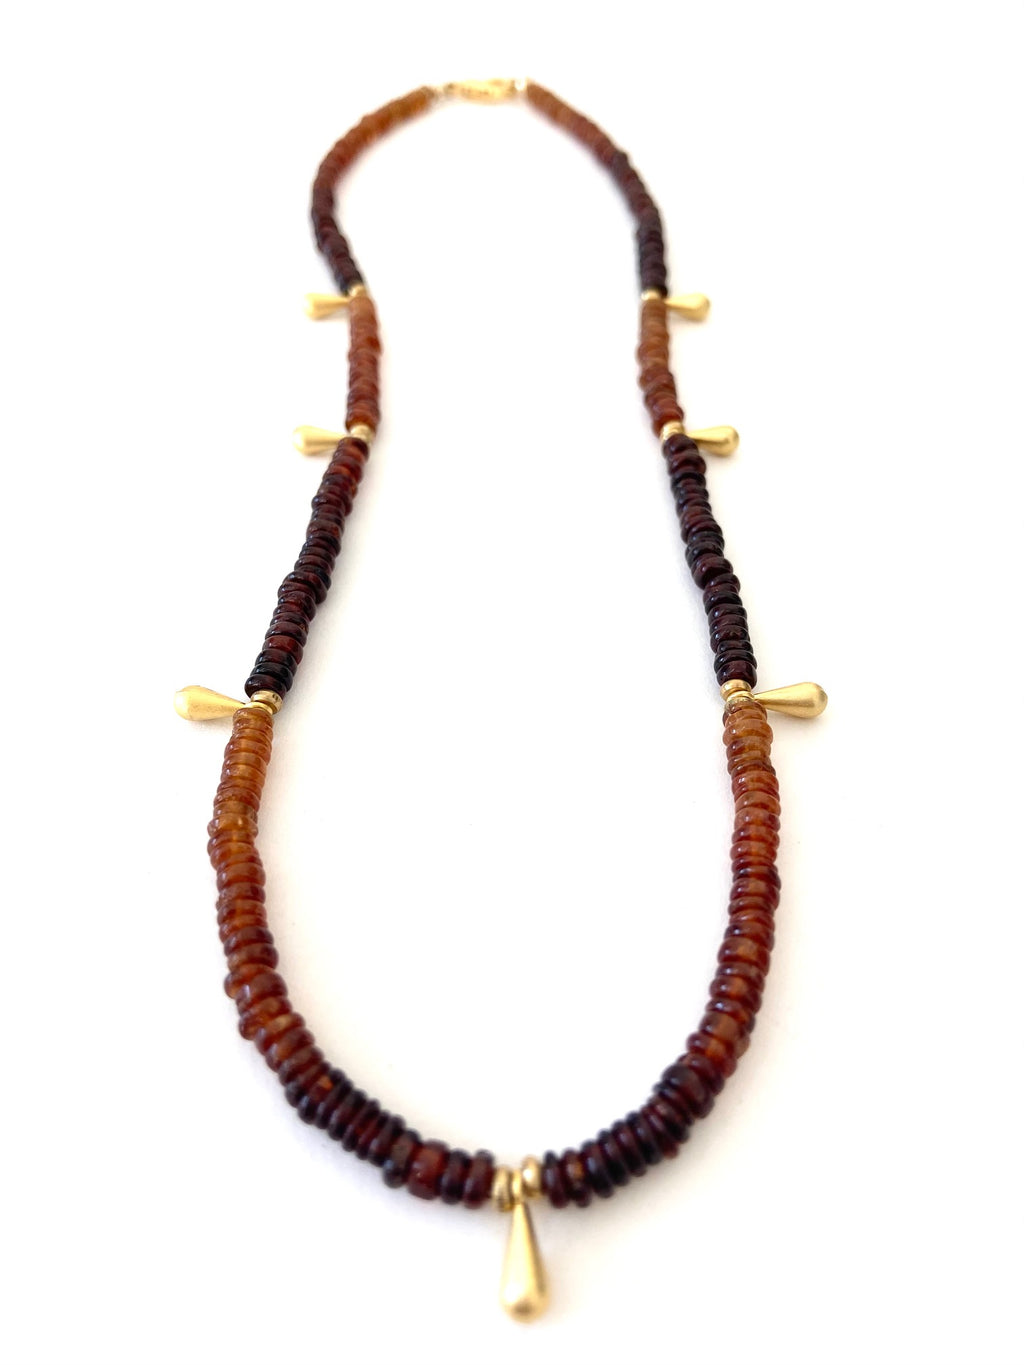 Mojave Sunrise Necklace in Shaded Garnet